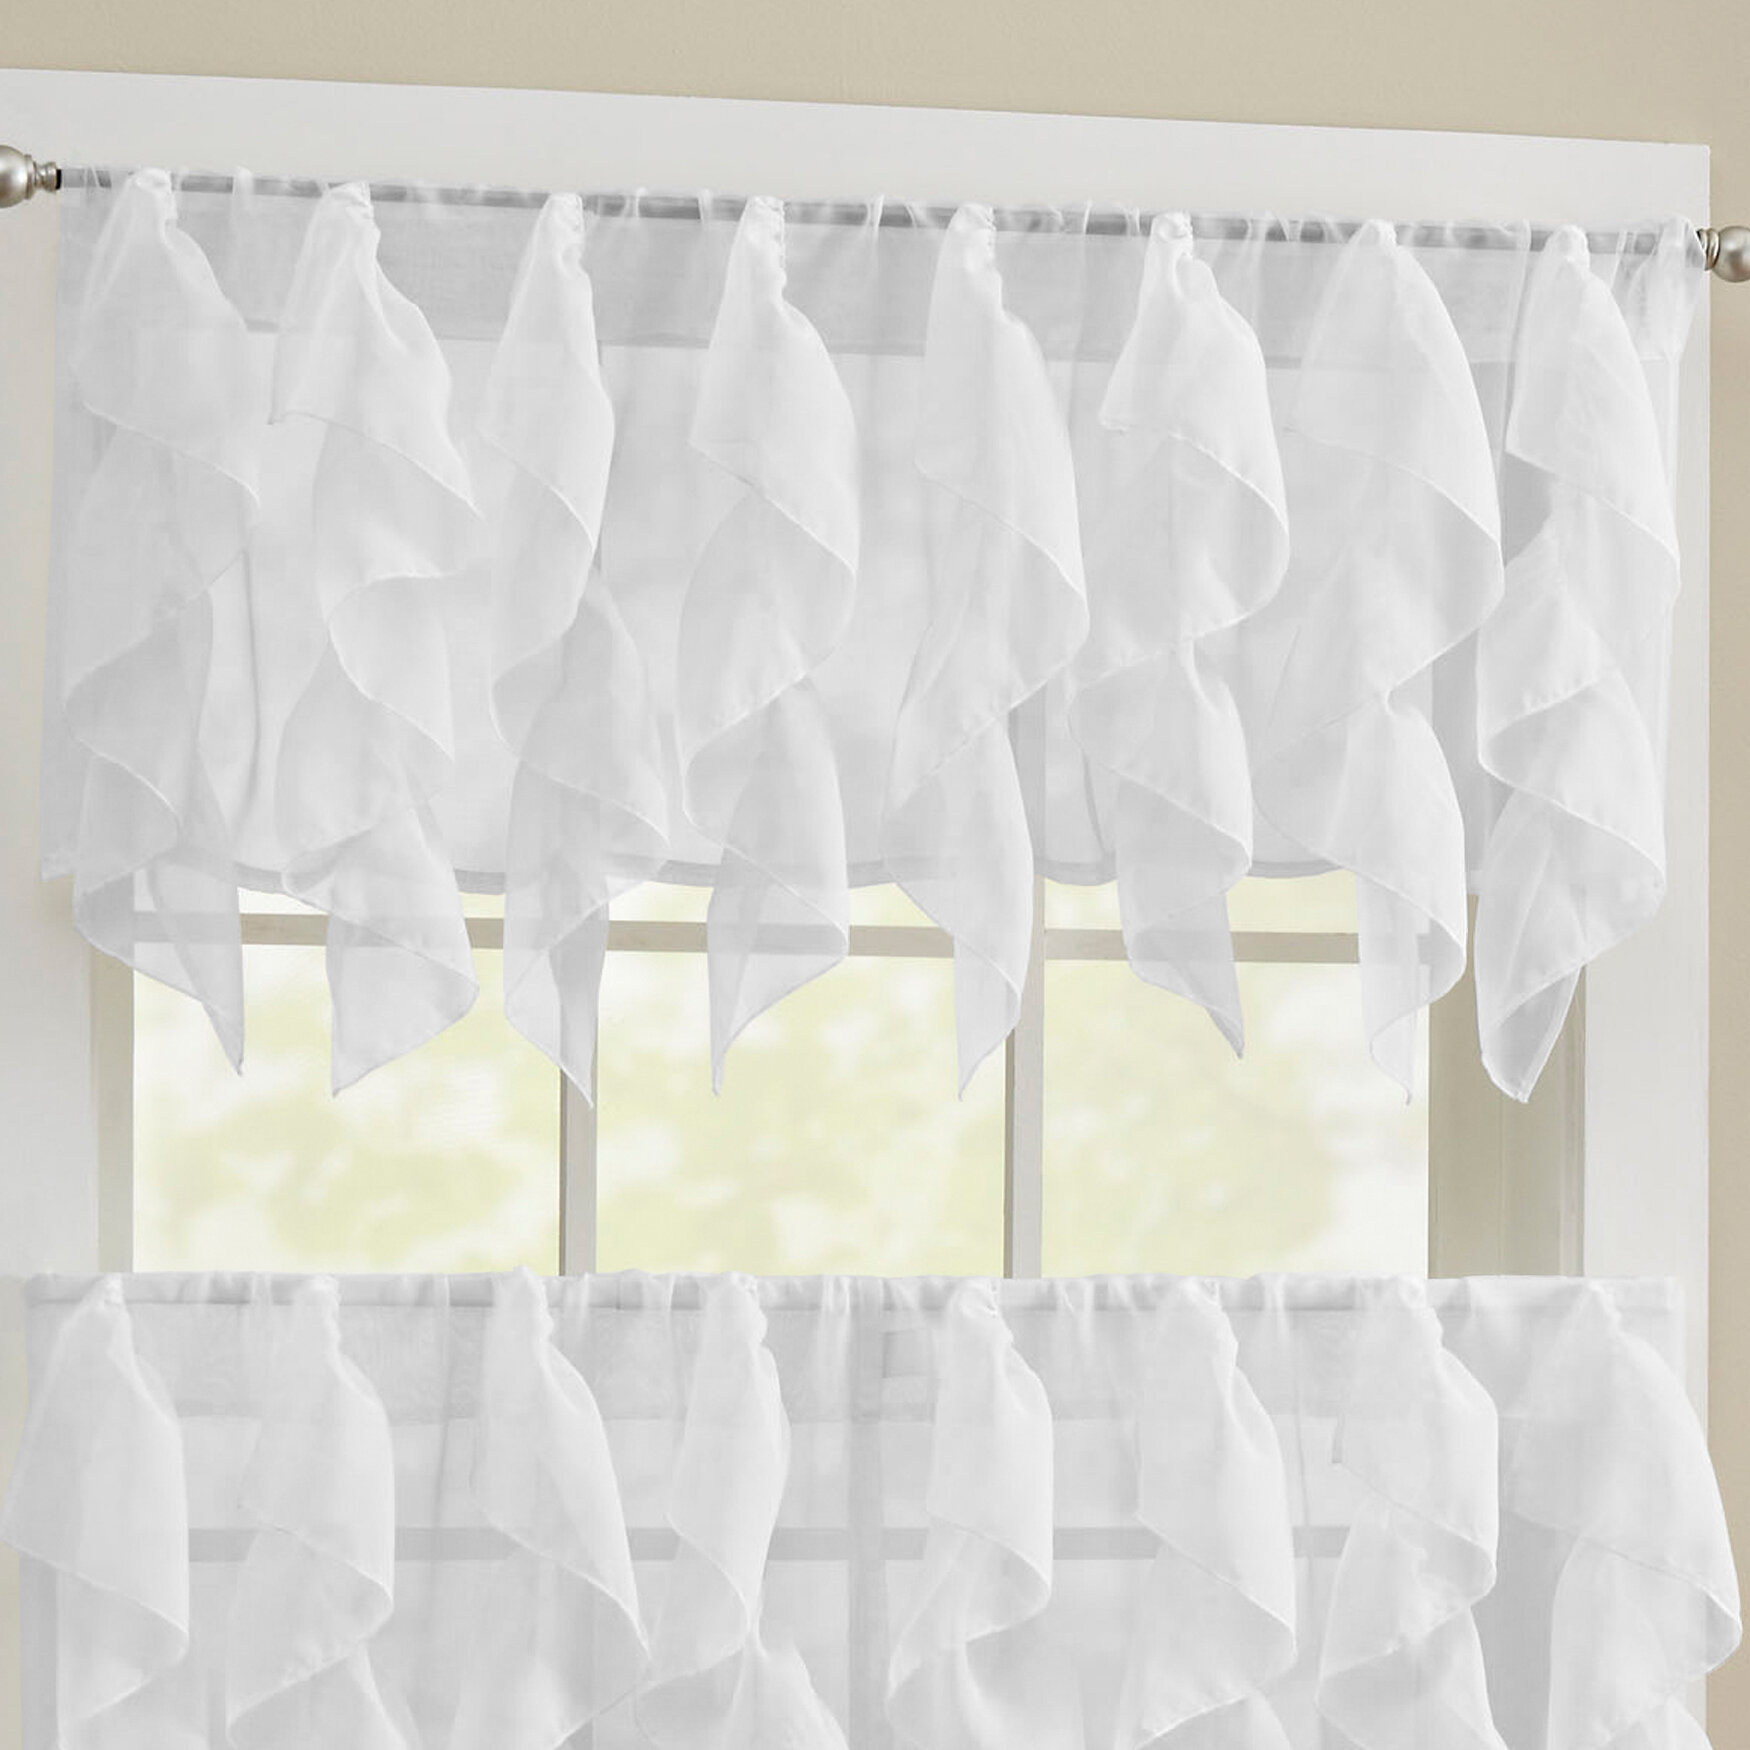 Alonza Window Valance With Silver Vertical Ruffled Waterfall Valance And Curtain Tiers (View 4 of 20)